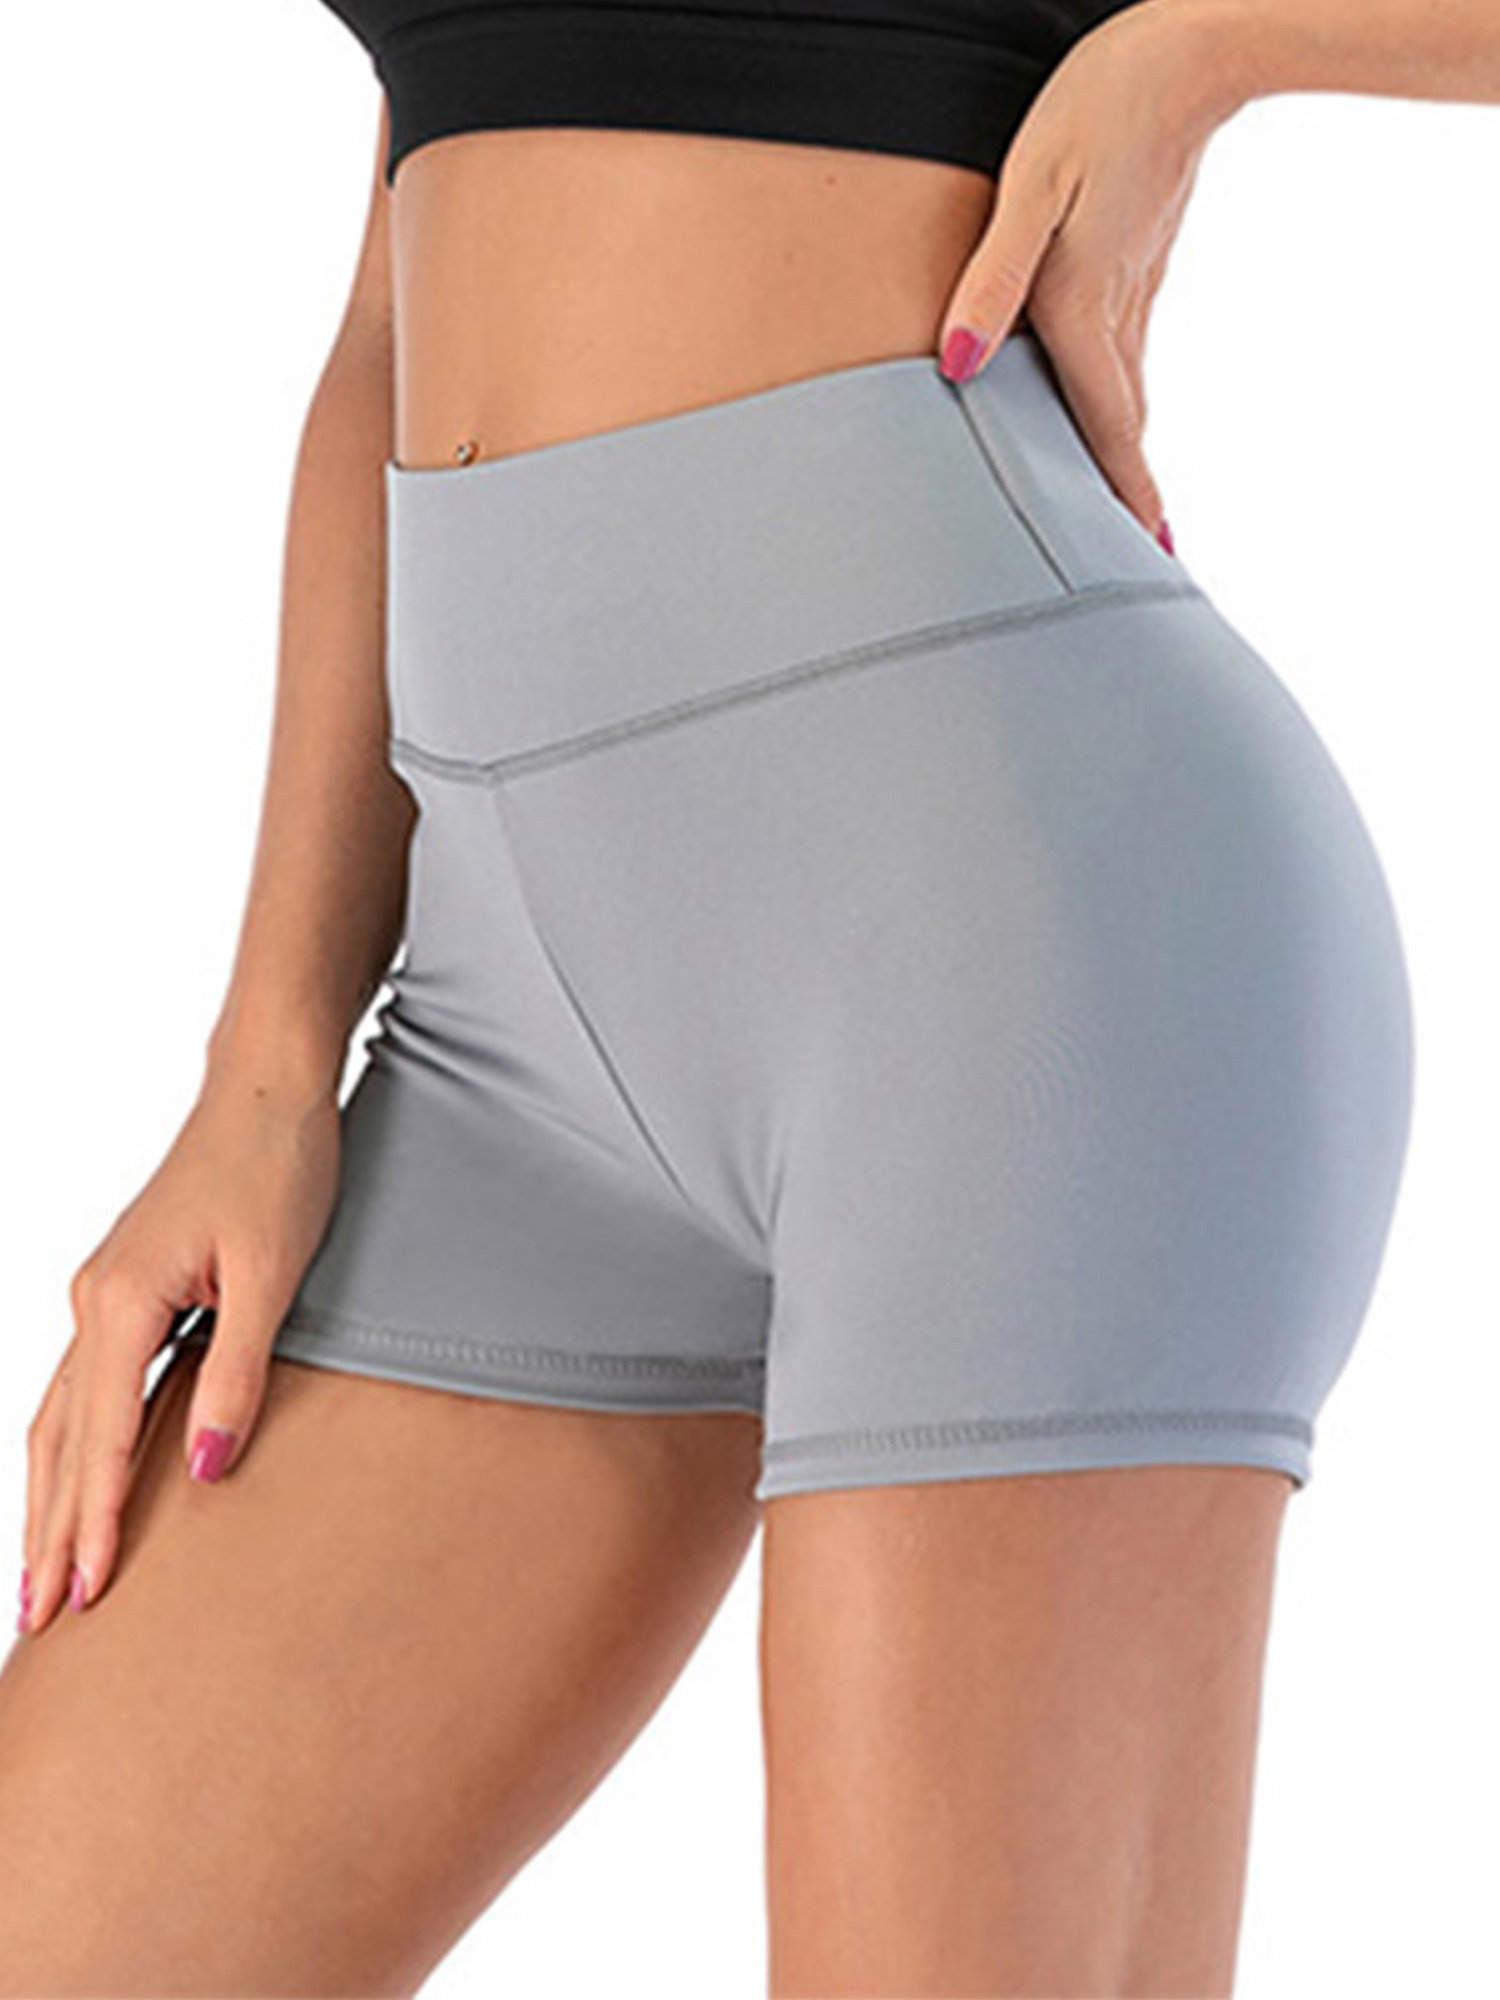 Details about  /Womens Elastic Shorts Yoga Gym Fitness Summer Butt Aift Booty Hot Pant Trouser A